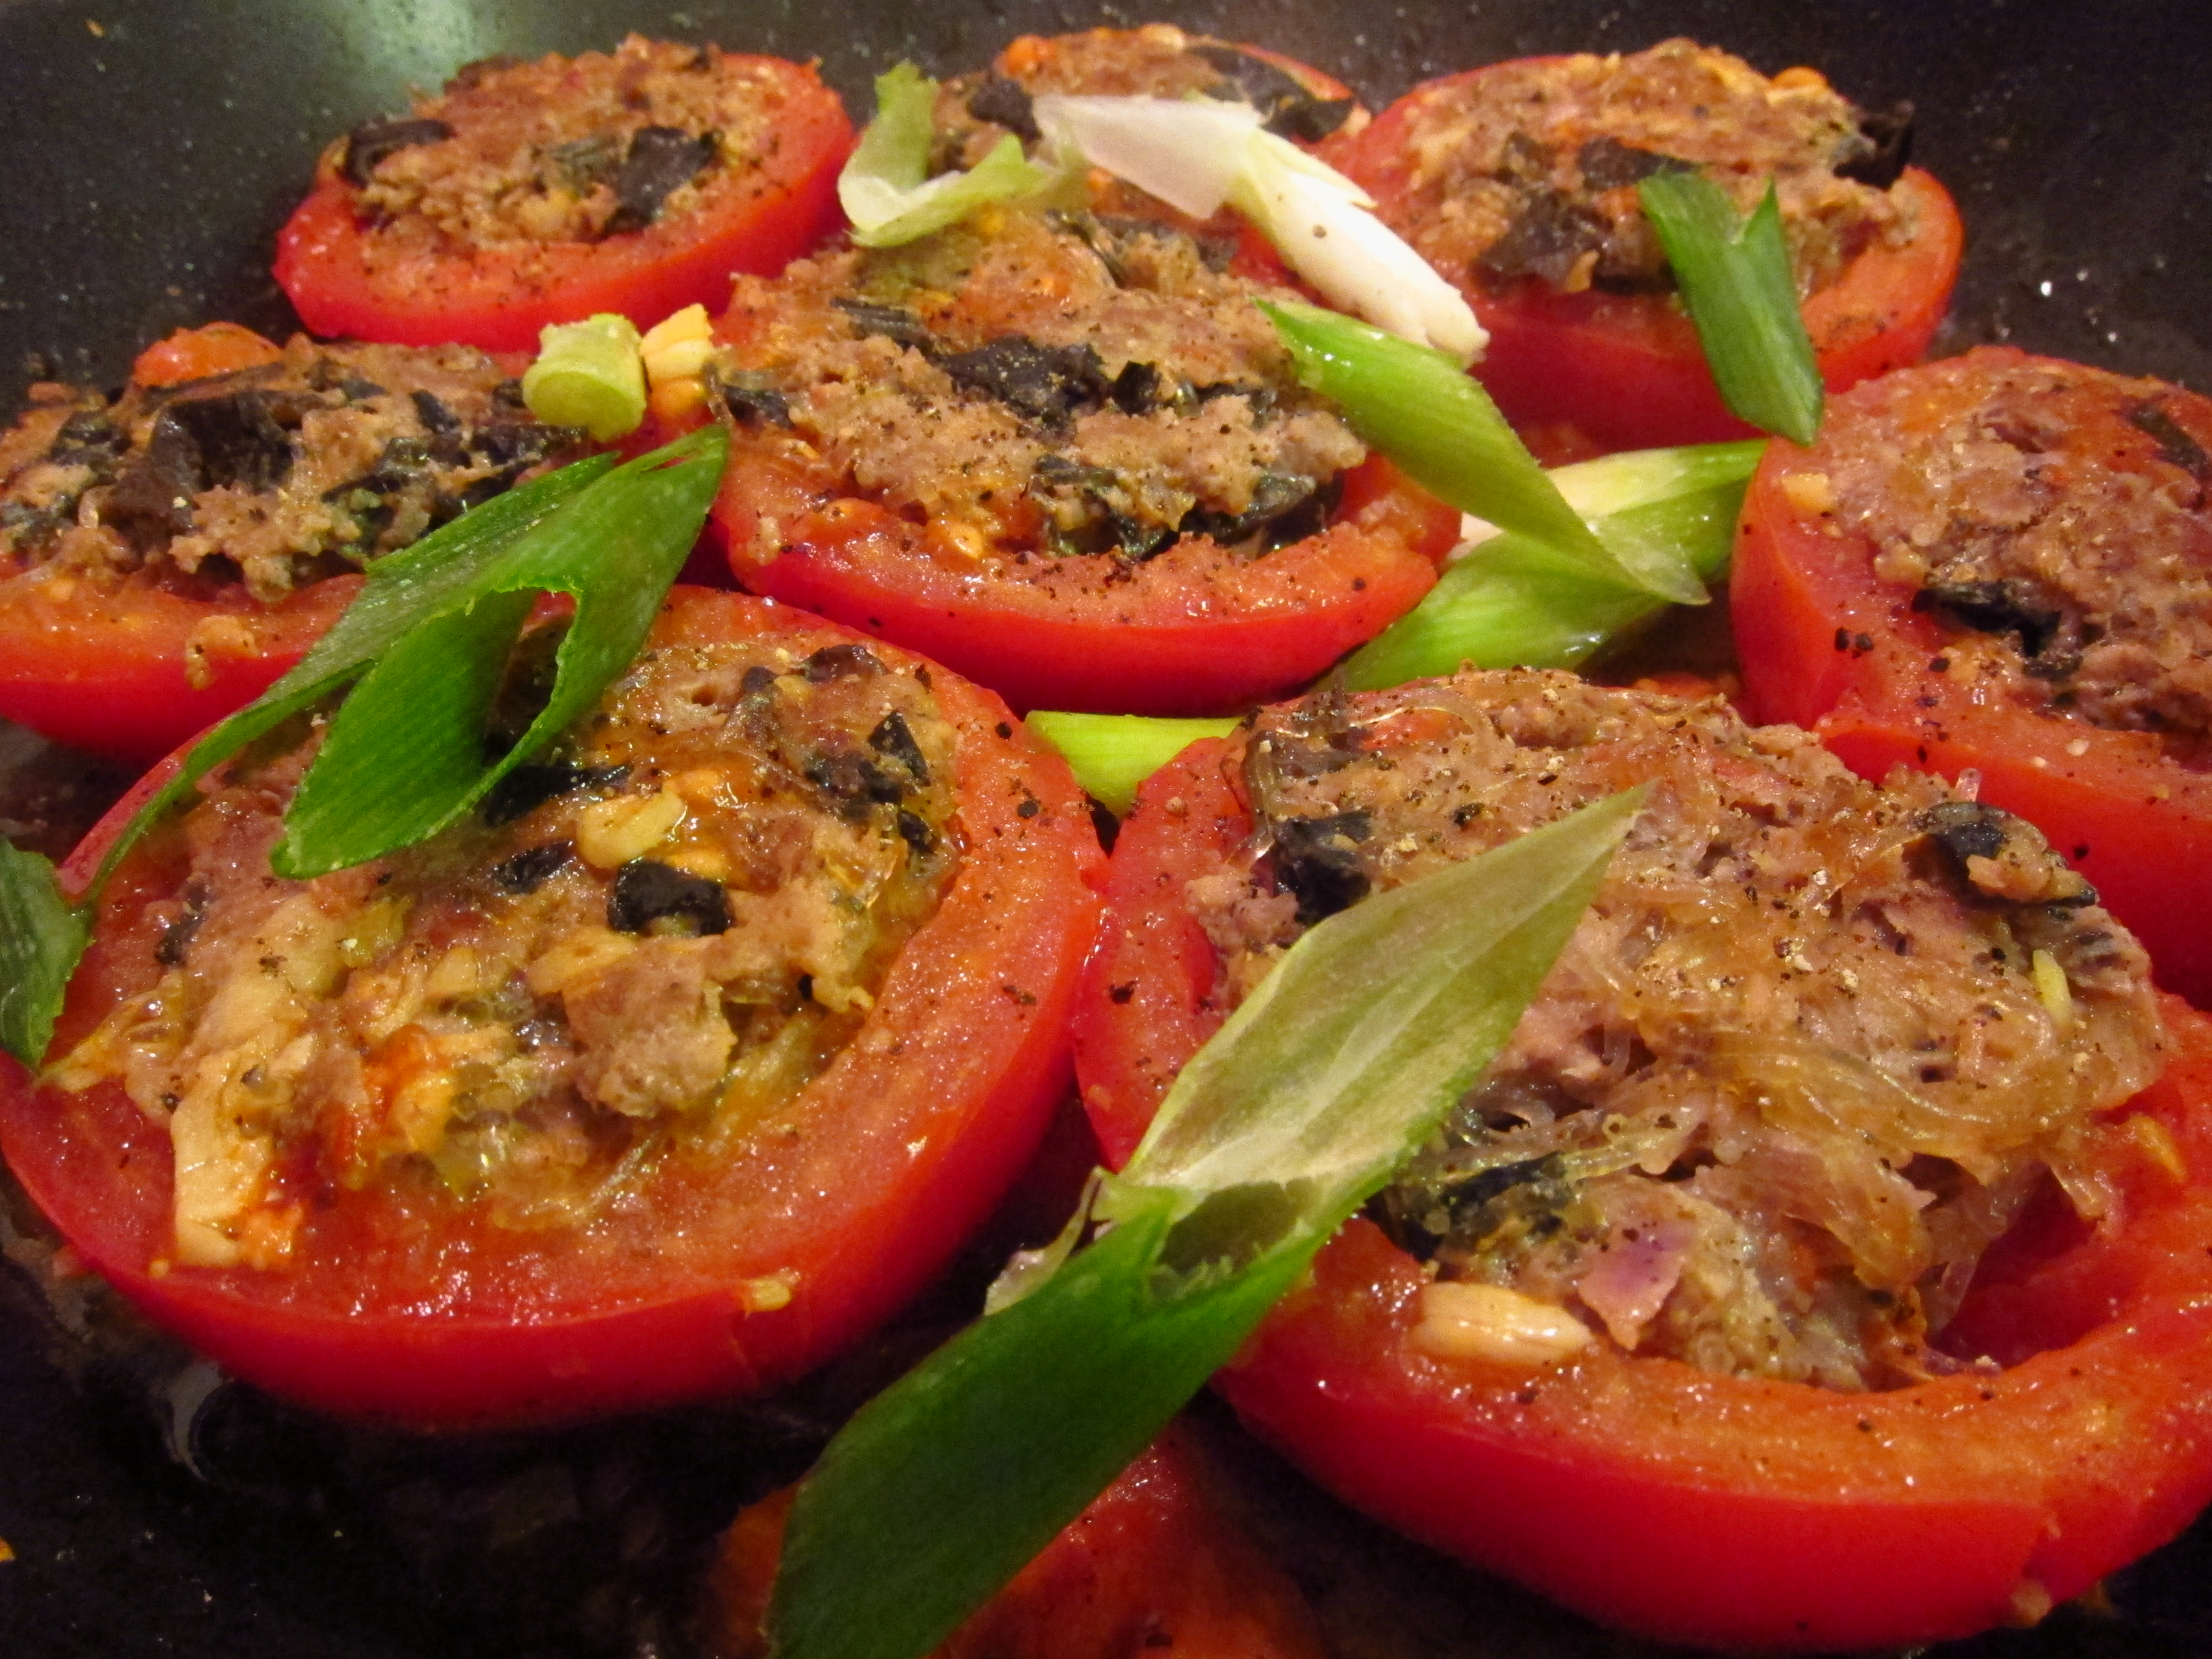 10.Blog_Double stuffed tomatoes - First tomatoes, then yourself3